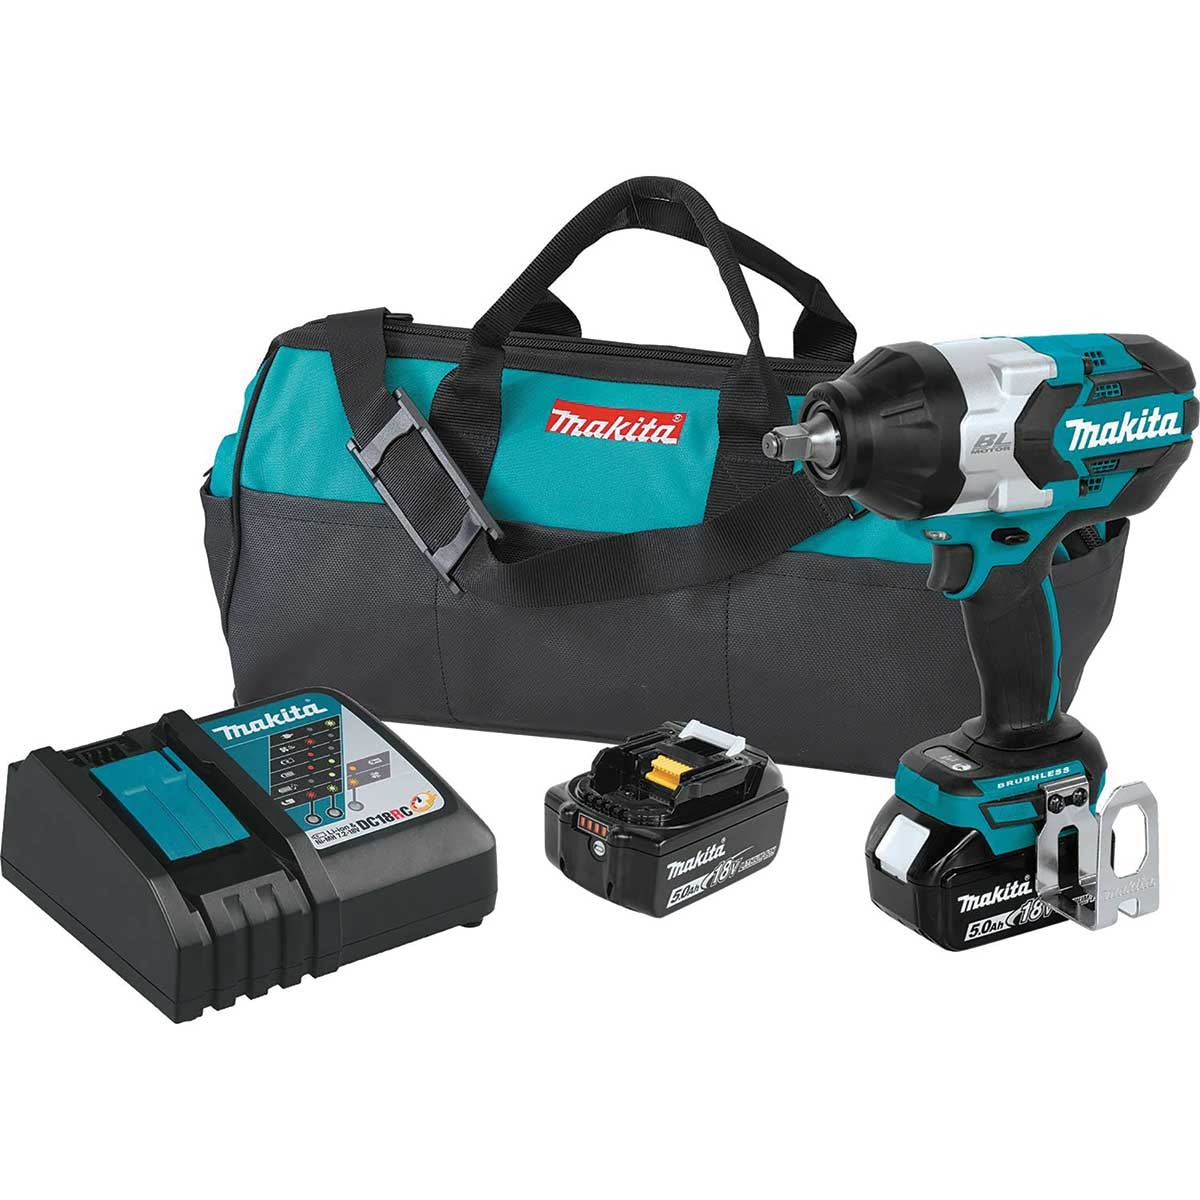 "Makita XWT08T 18V LXT® Lithium-Ion Brushless Cordless High Torque 1/2"" Sq. Drive Impact Wrench"